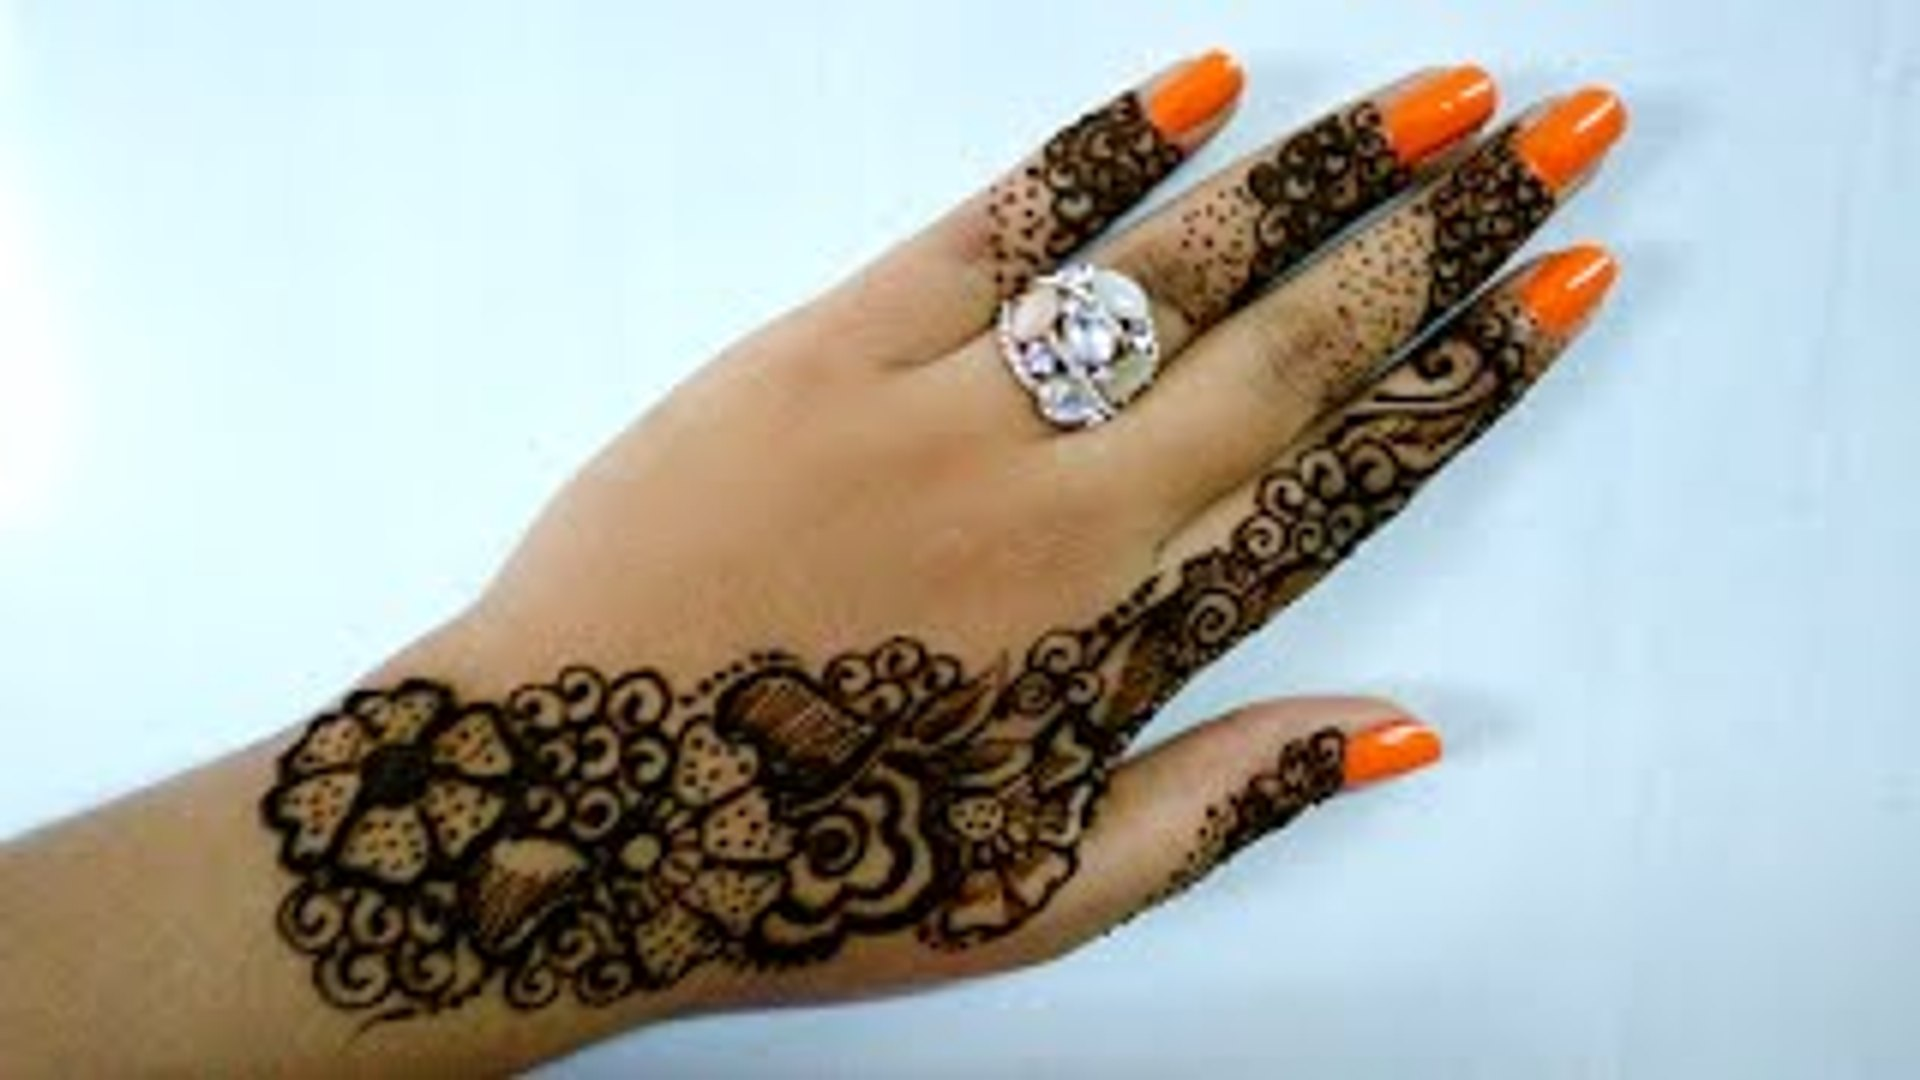 Easy Diy Beautiful Arabic Henna Mehndi Design Simple And Easy Step By Step For Hands Episode 125 By Art Institute Video Dailymotion